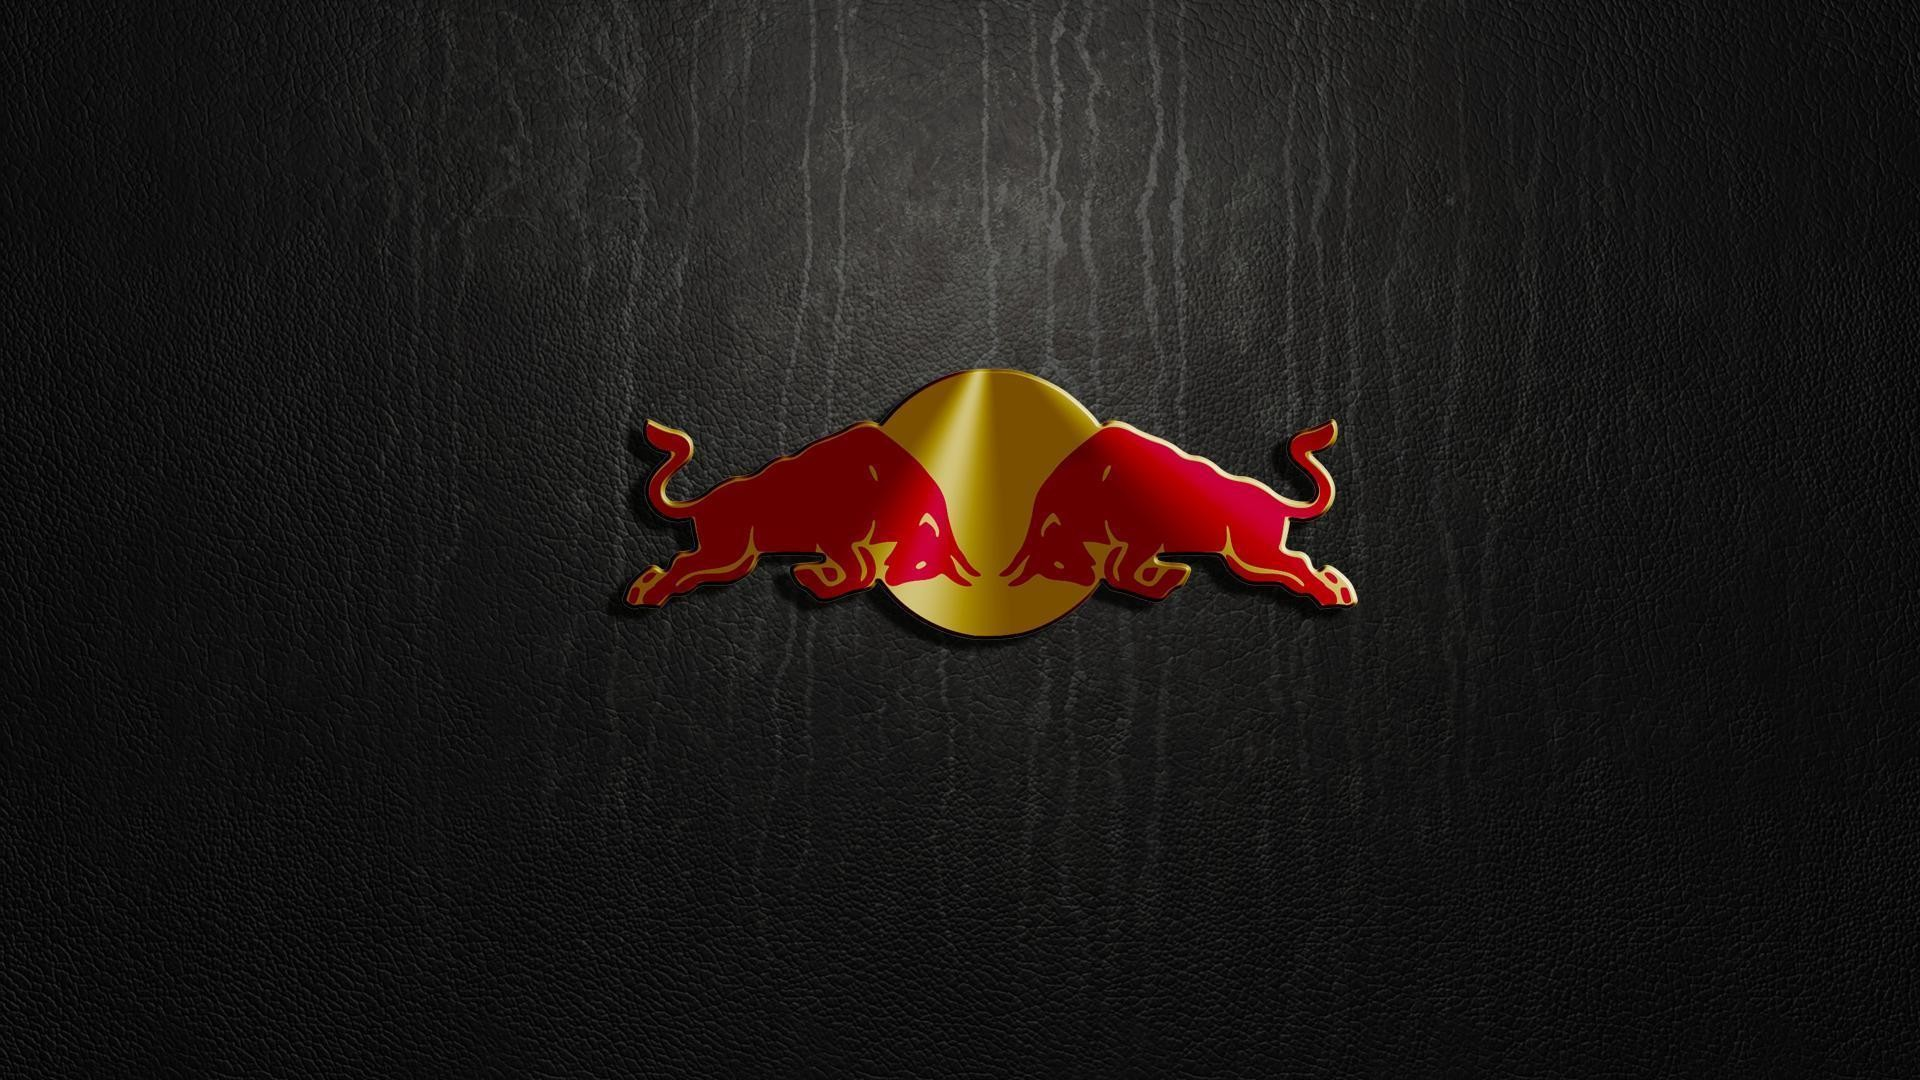 1920x1080 Red Bull Wallpaper HD Desktop #81657 - Ehiyo.com